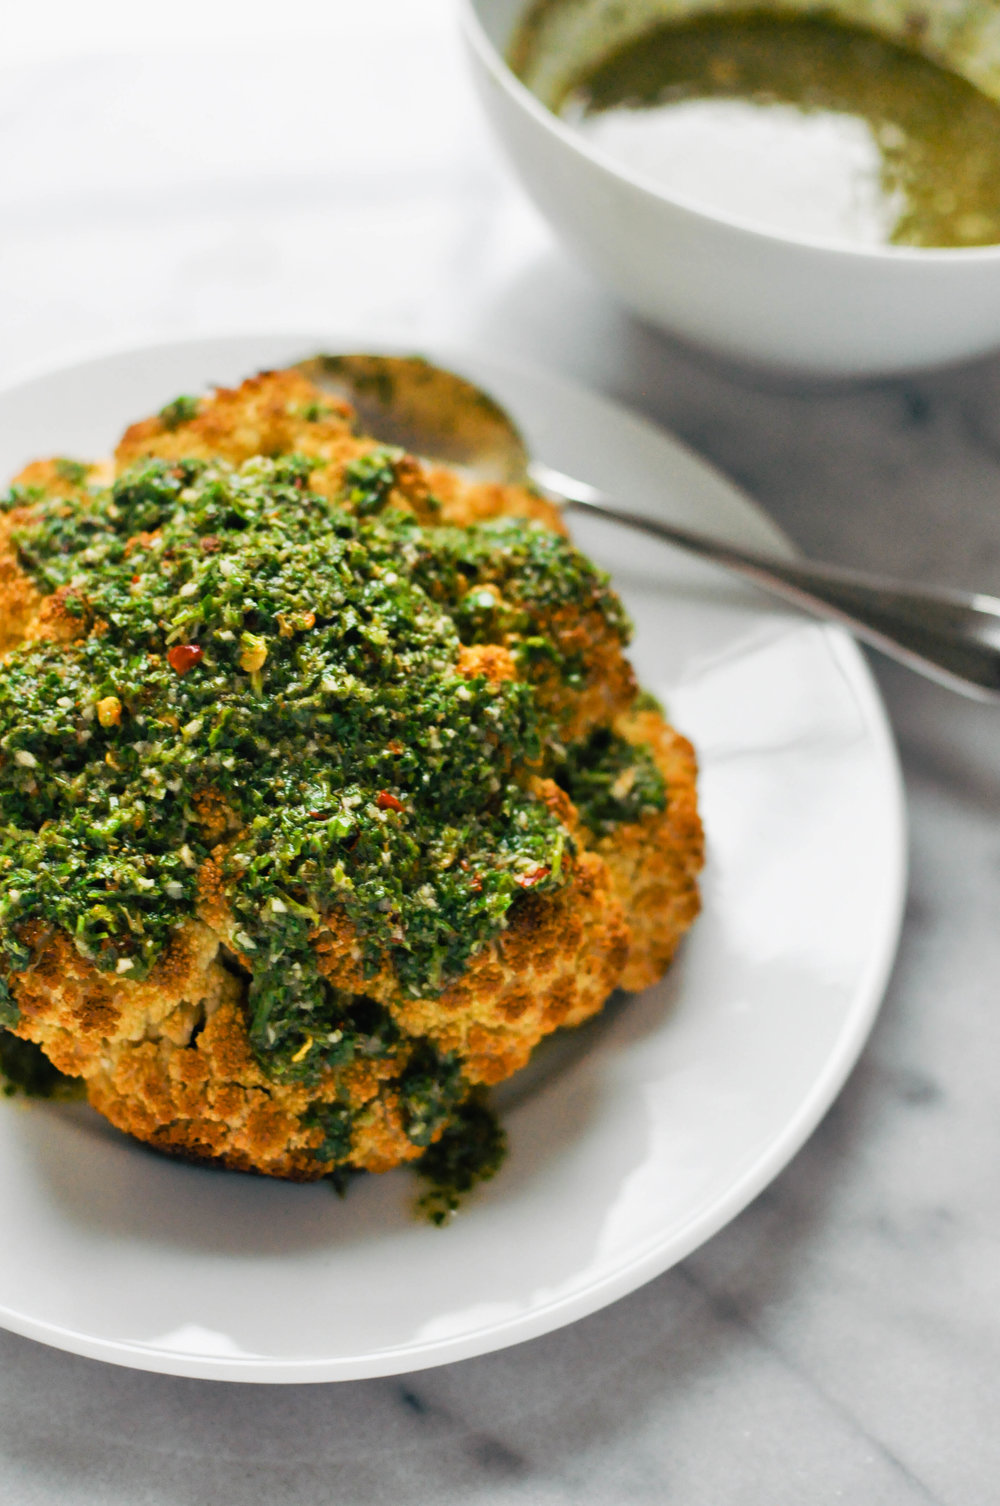 Whole Roasted Cauliflower with Chimichurri Sauce  - a delicious vegan side or main dish | This Healthy Table